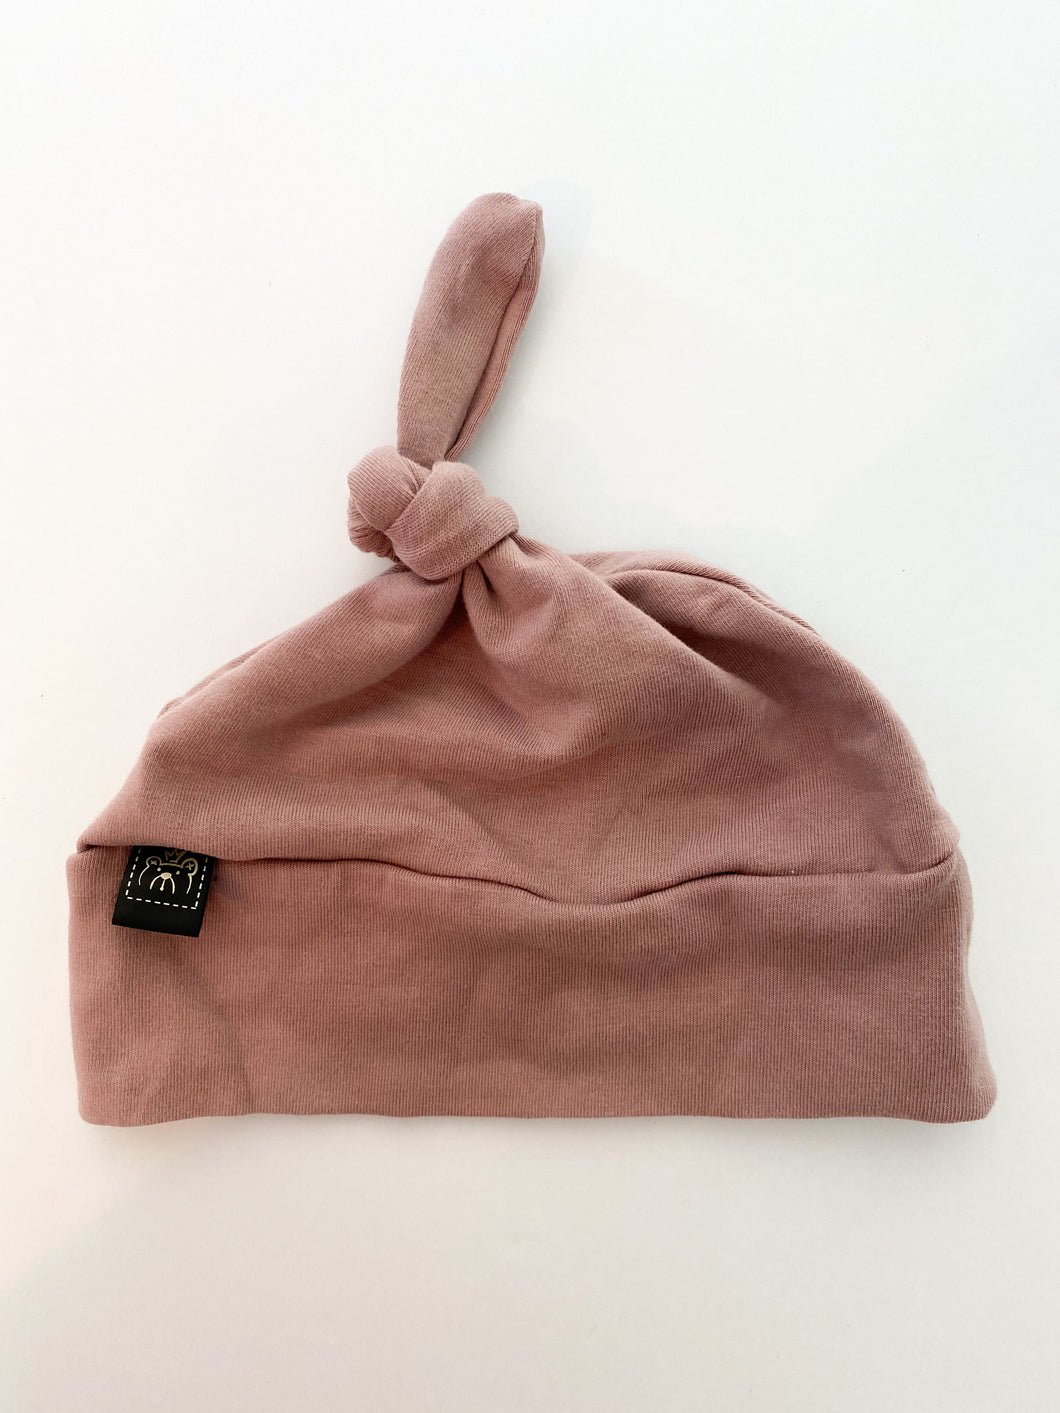 3m-6m knot hat LAB ( like New )Dusty Rose